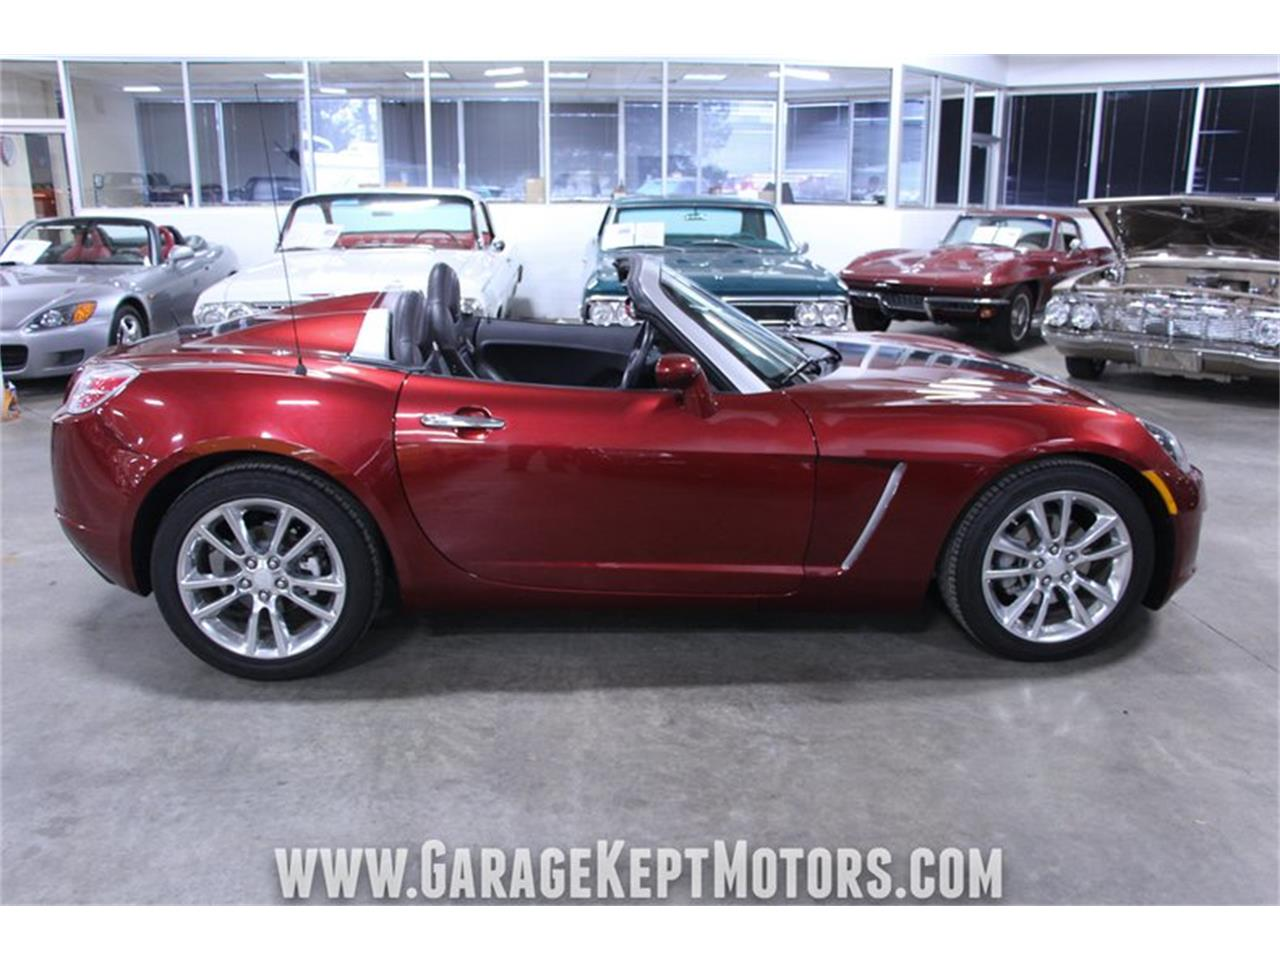 2009 Saturn Sky for sale in Grand Rapids, MI – photo 26